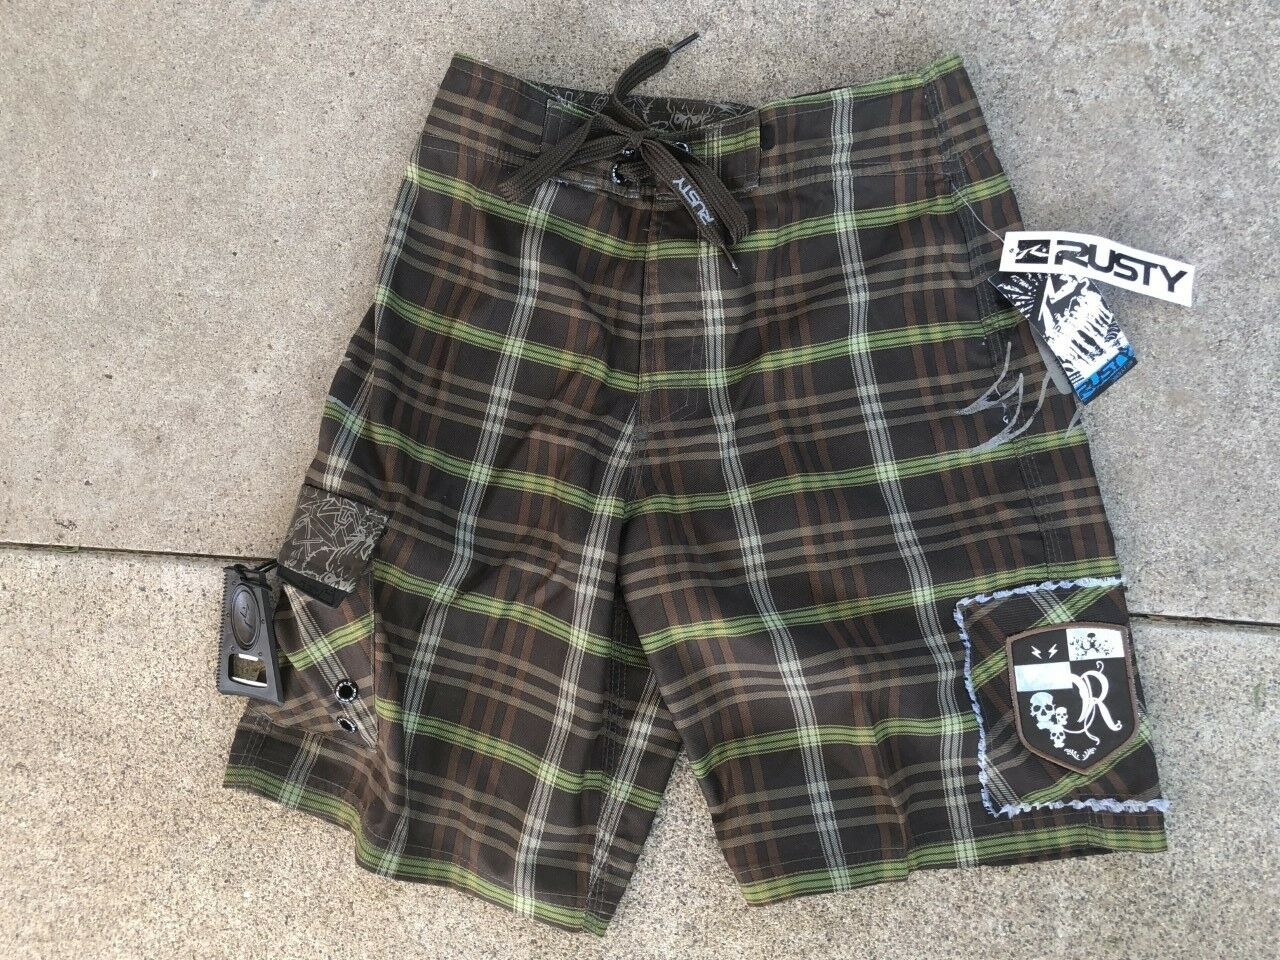 NEW RUSTY BOARDSHORTS SURF SUP SURFING MX HAWAII TRUNKS BOYS   MENS SIZE 26